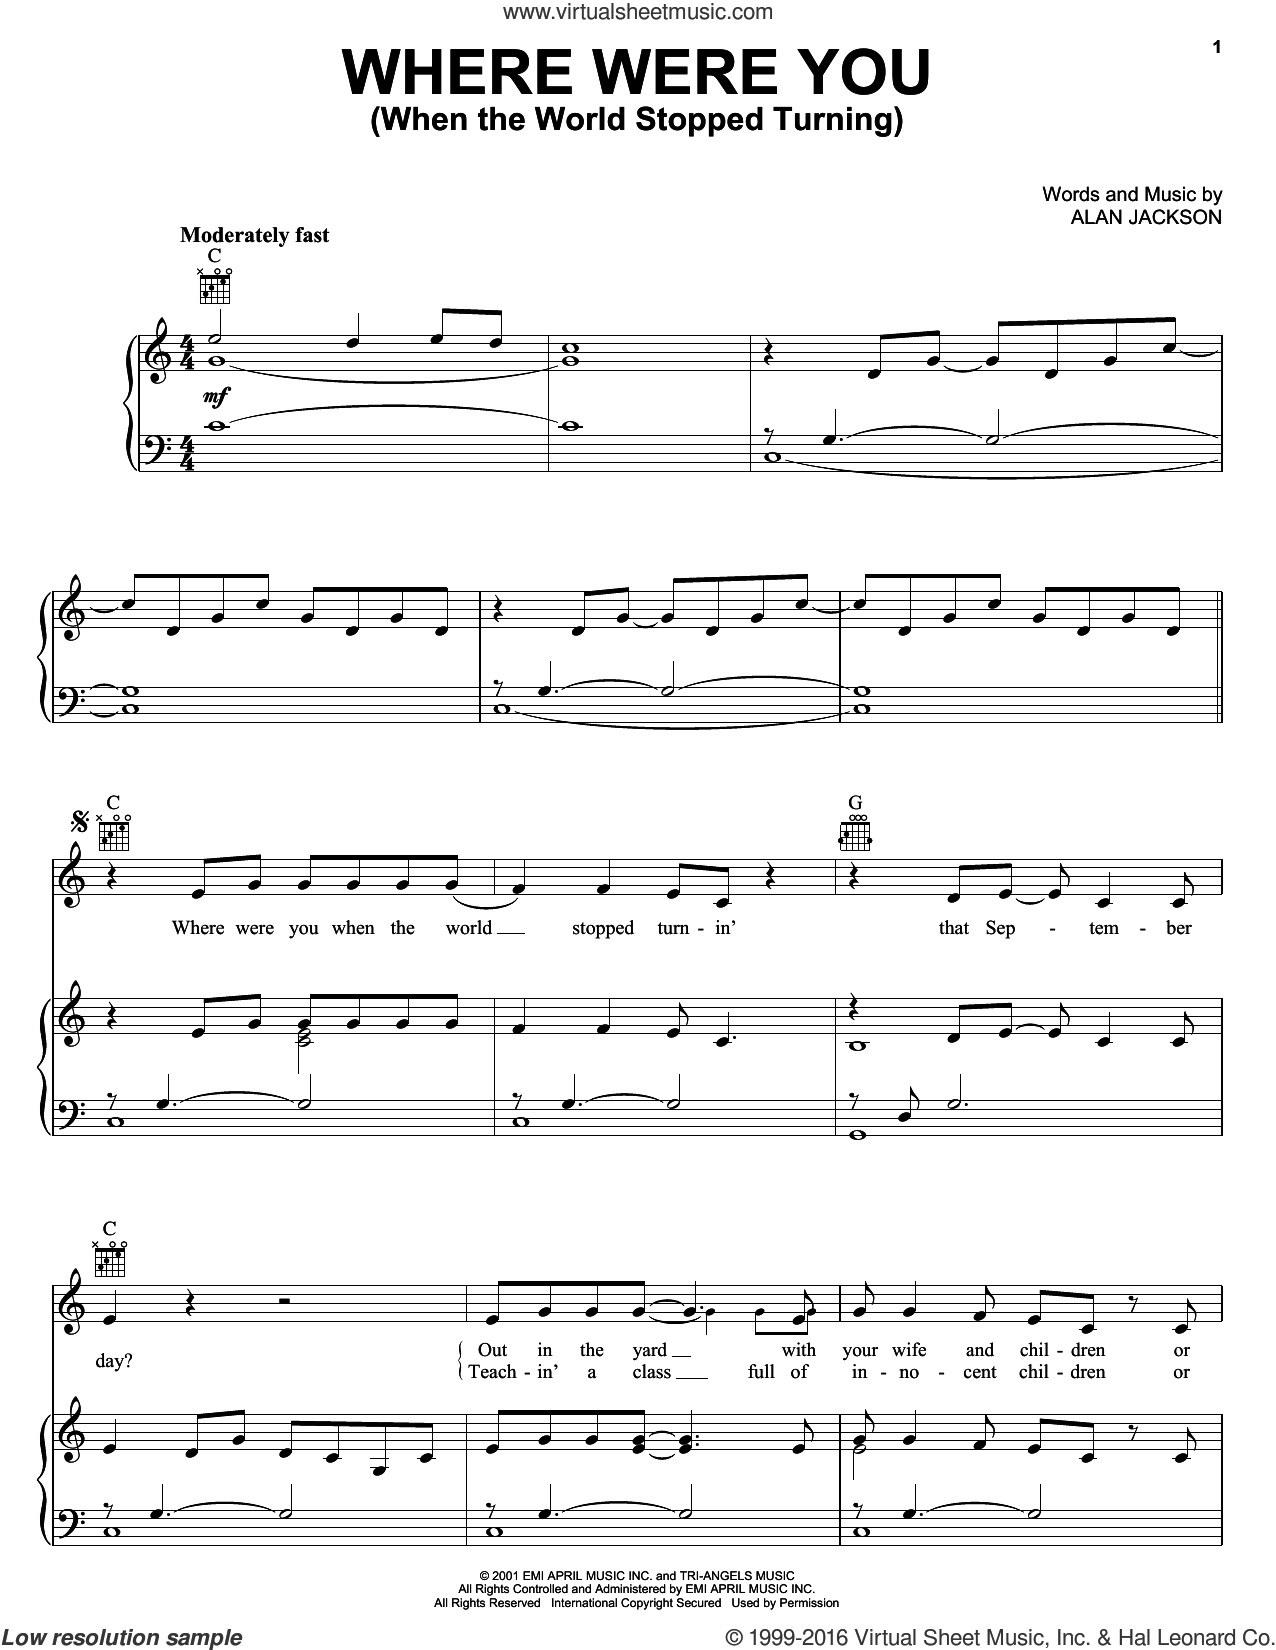 Where Were You (When The World Stopped Turning) sheet music for voice, piano or guitar by Alan Jackson, intermediate skill level